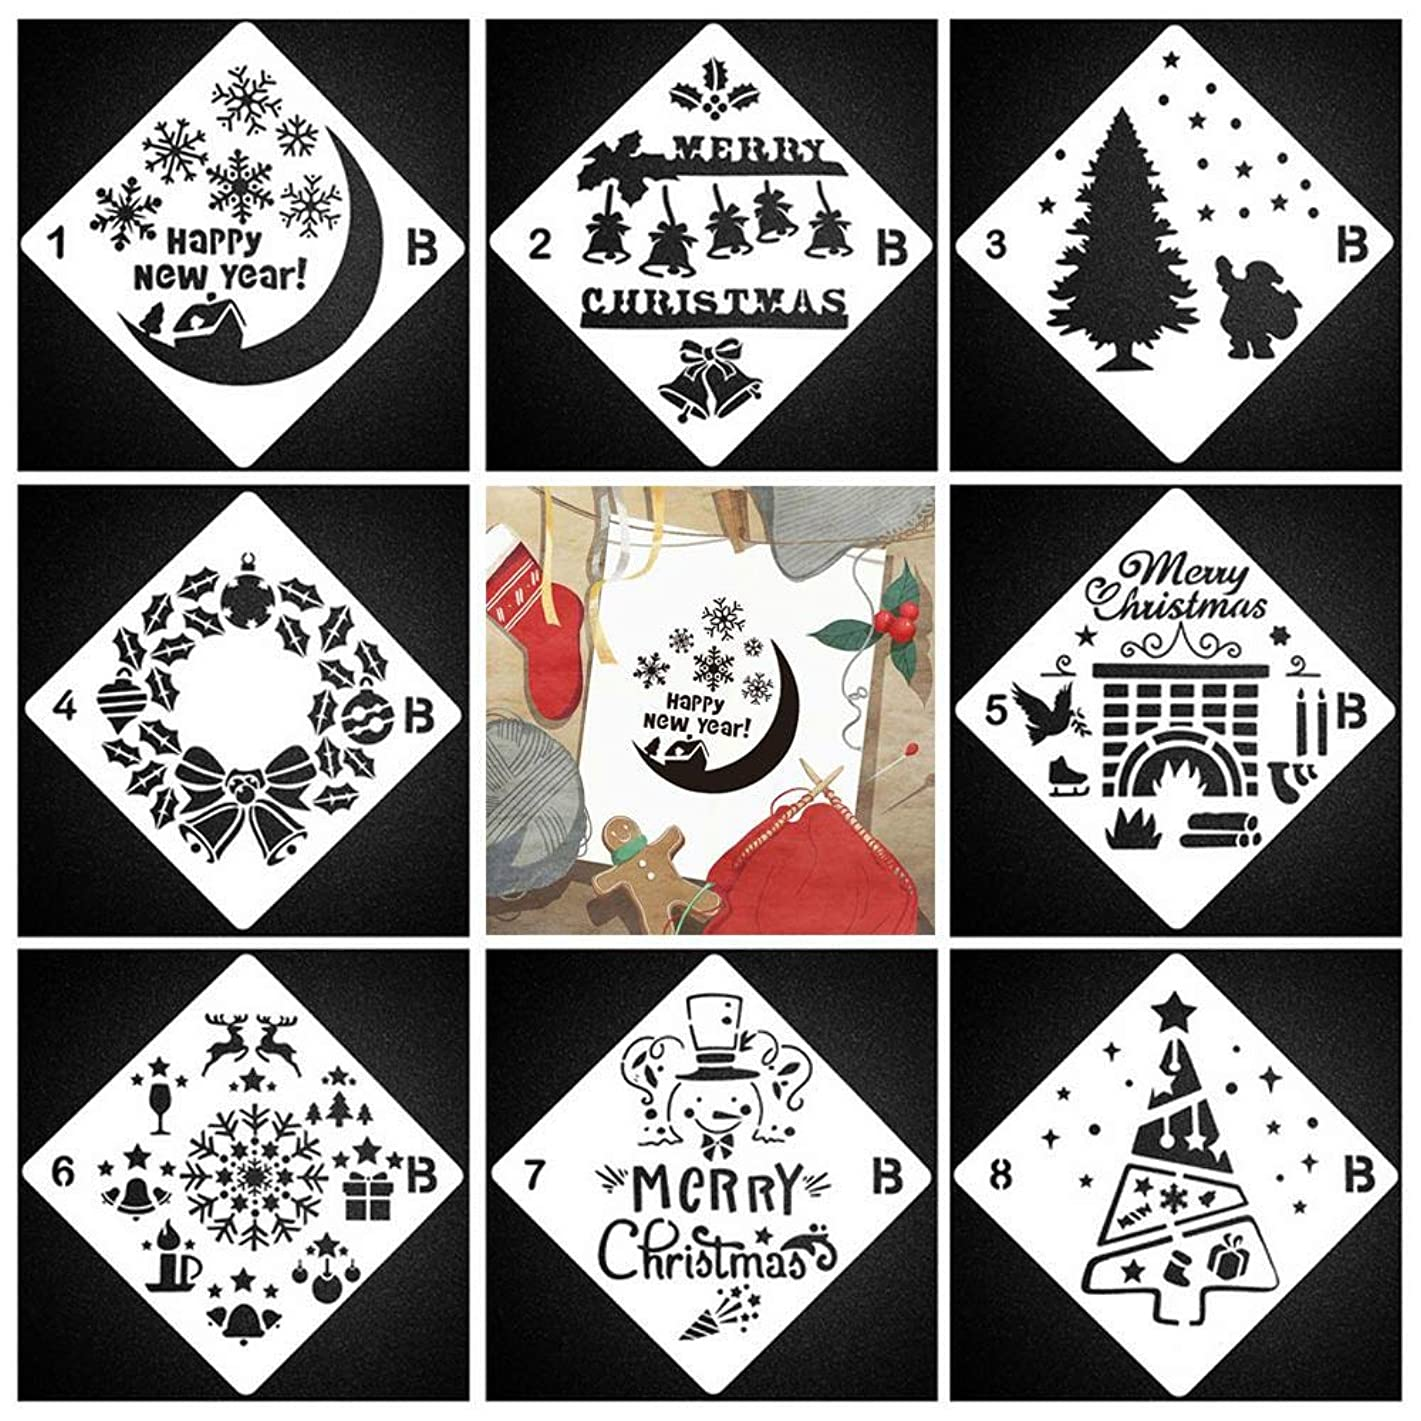 KOBWA Christmas Drawing Painting Stencils Scale Template Sets, 8 Pcs Different Christmas Style Stencils for Painting on Wood, Craft Cards Making, Human Body Painting, Home Decor